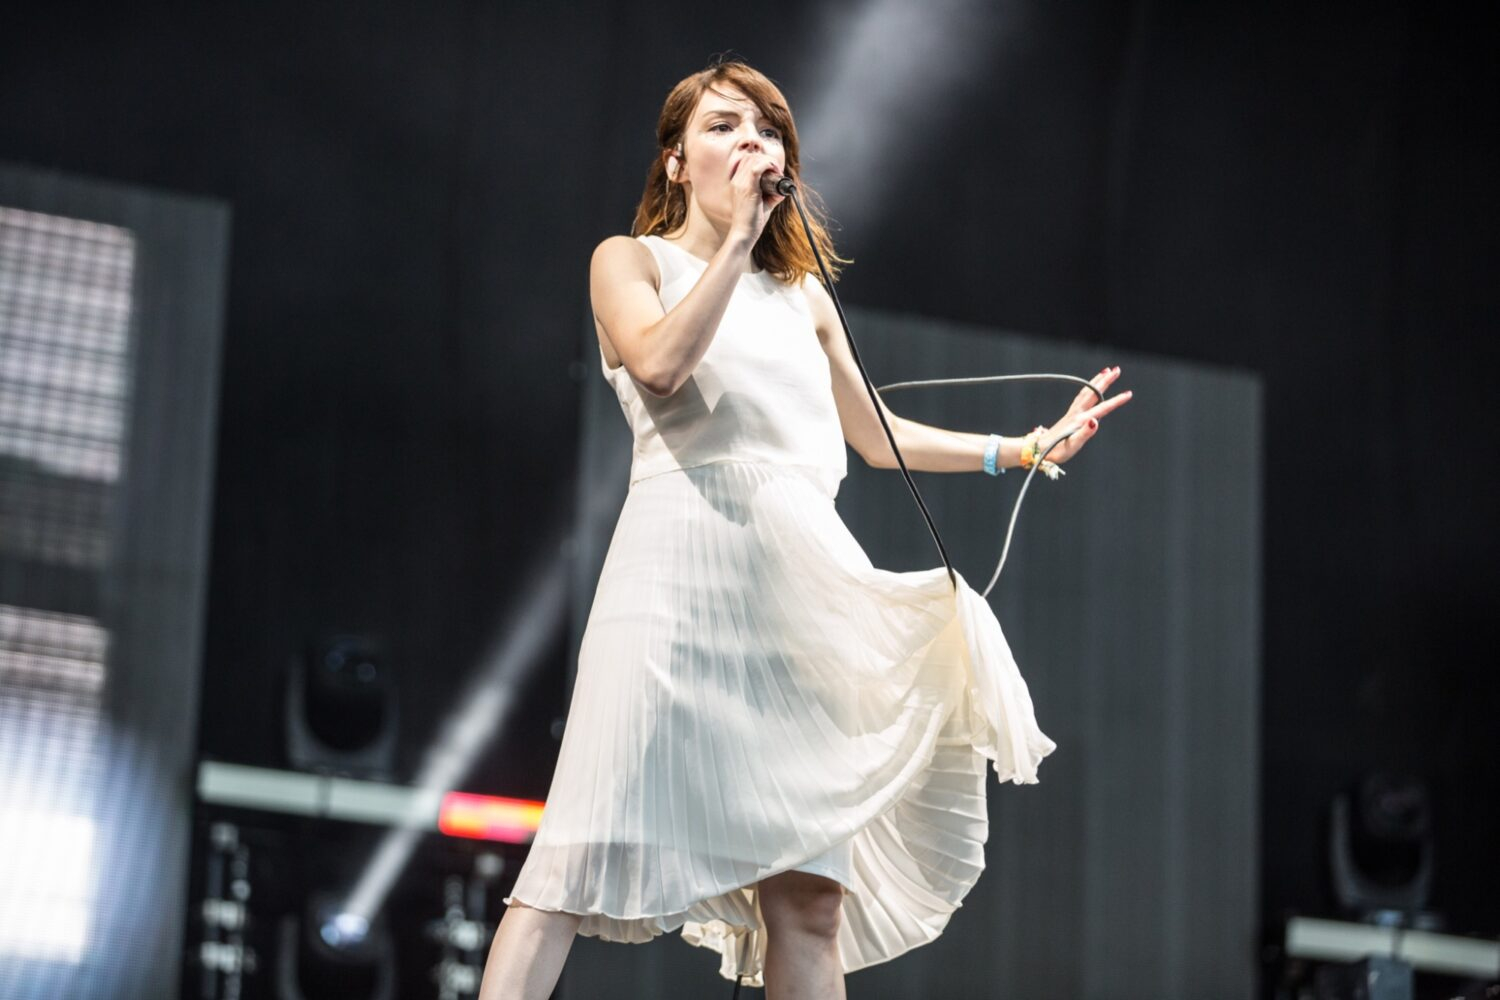 CHVRCHES, The Horrors, Shame and more are set for Citadel 2018